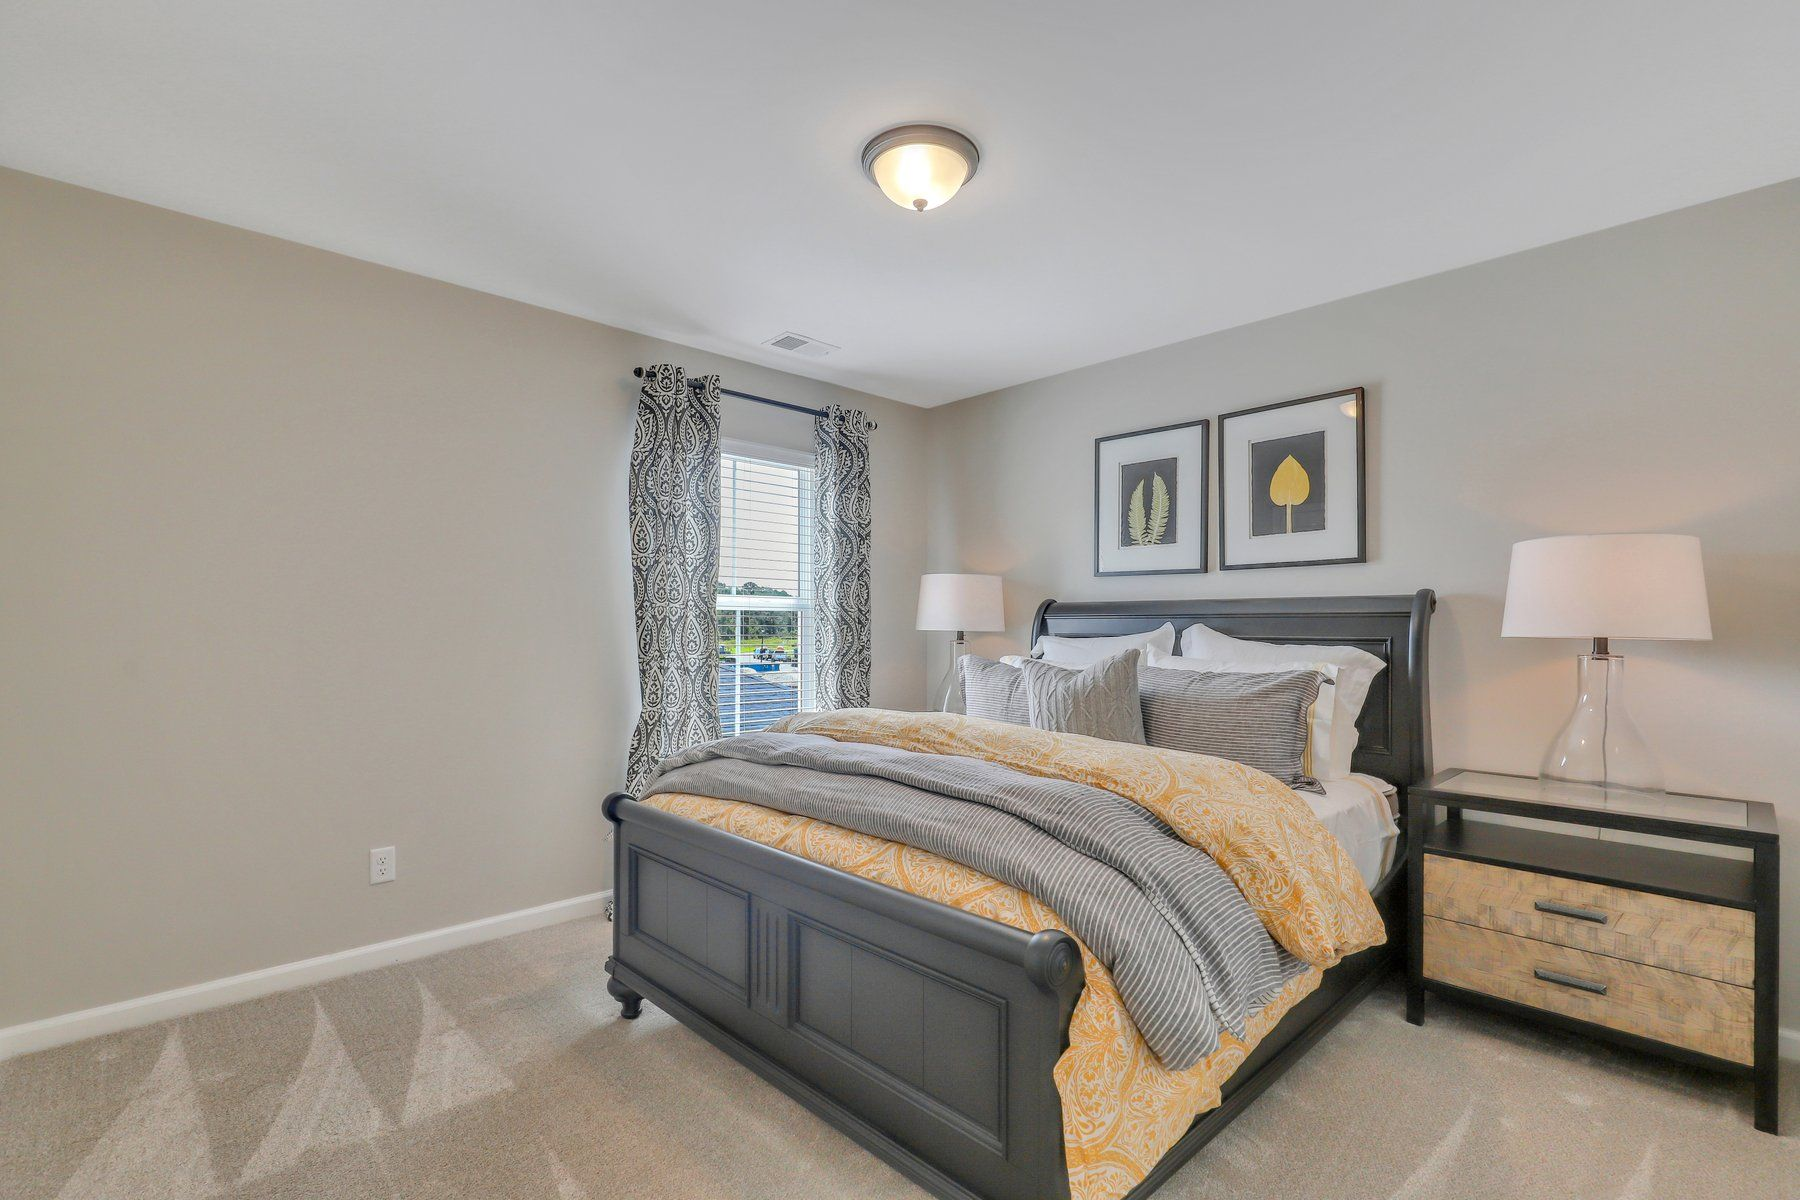 Bedroom featured in The Brunswick By Village Park Homes in Savannah, GA